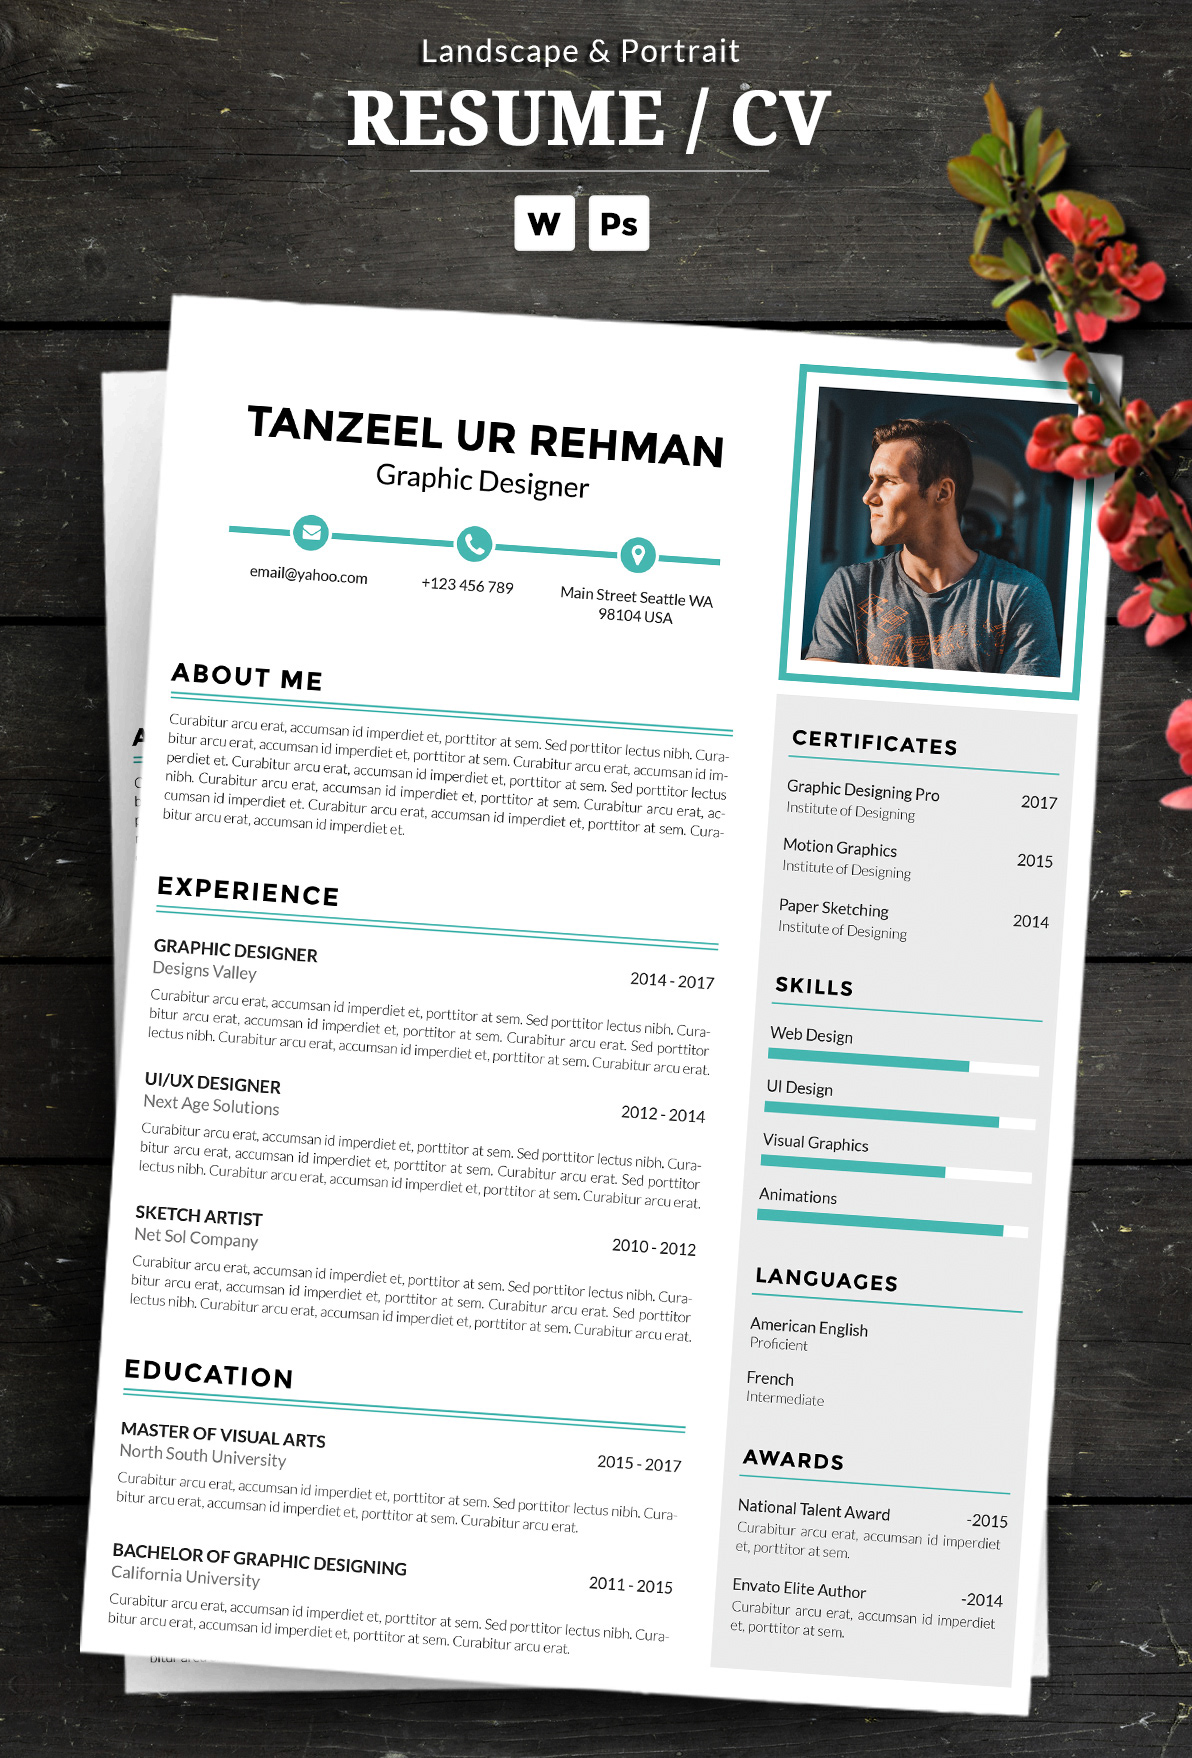 CV,Resume,photoshop,adobe,editable,word,ms word,free,download,cover letter